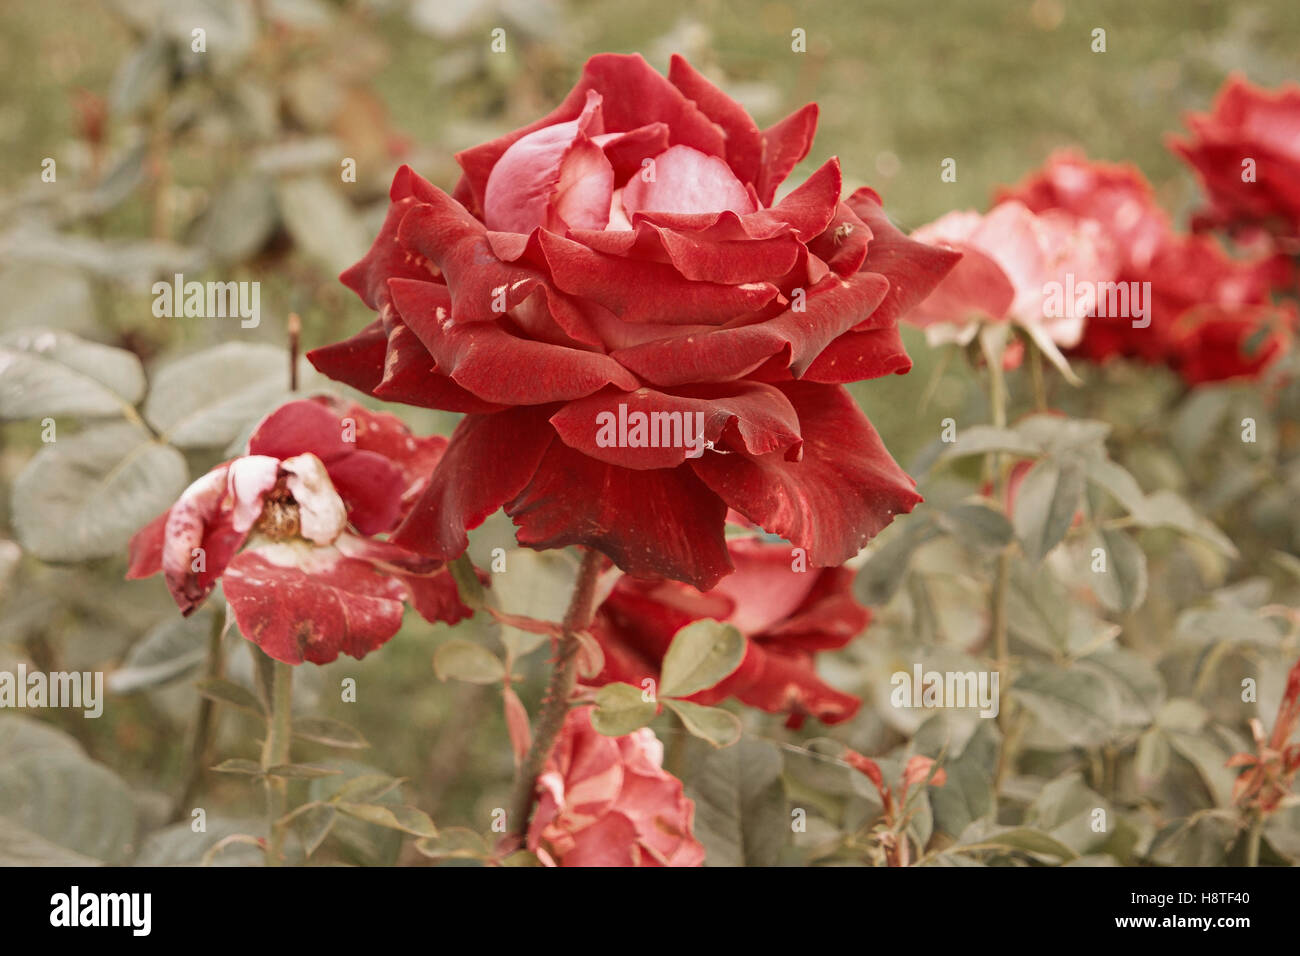 Red-creamy rose dying in autumn garden. Wilted rose. Sad fall mood ...